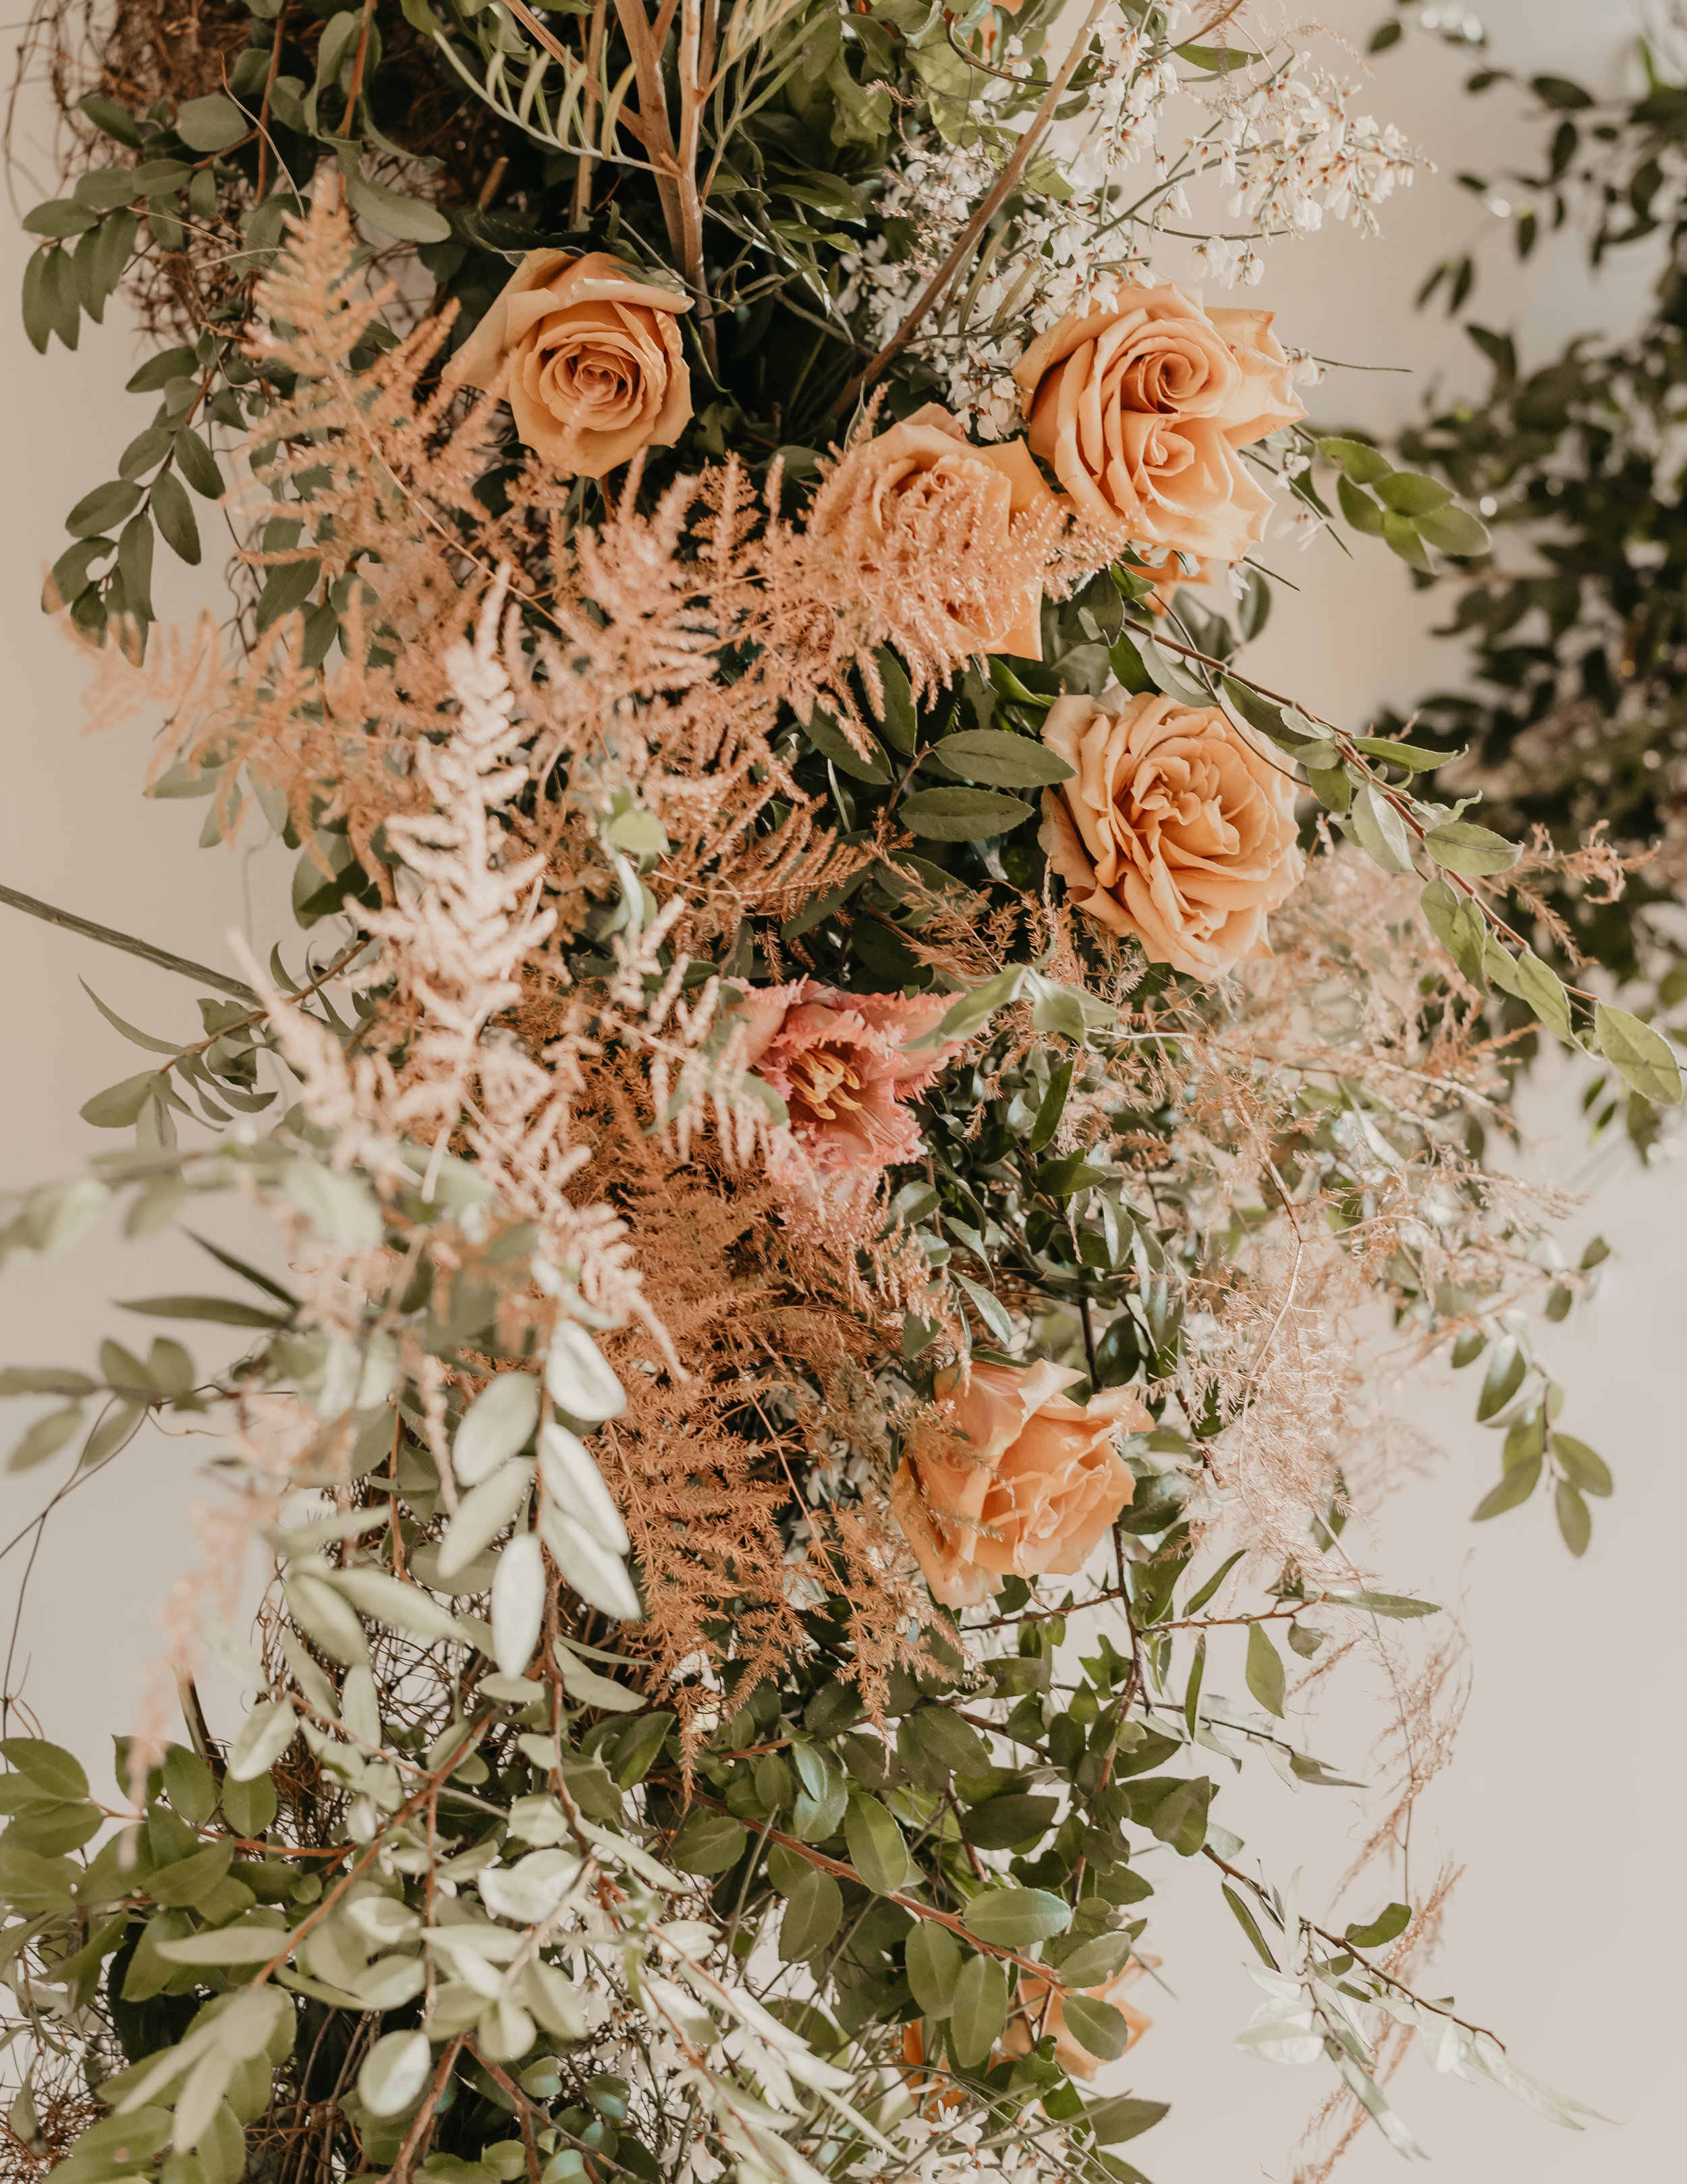 Blush, Green, Tan roses and copper colored florals for the Mid-Century Modern Boho Inspirational Editorial - Pearl Weddings & Events